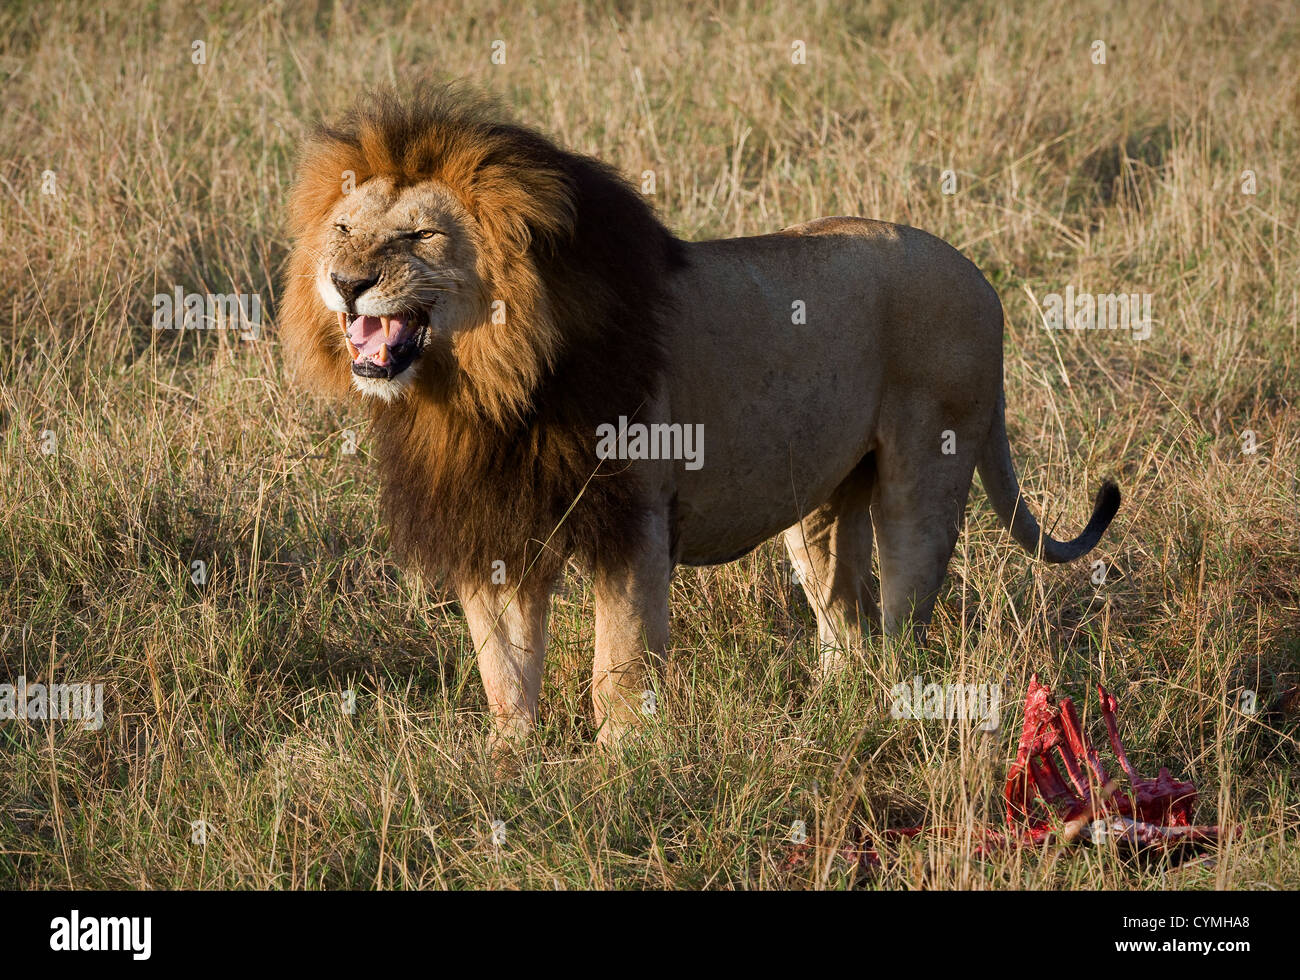 Lion's grin. - Stock Image